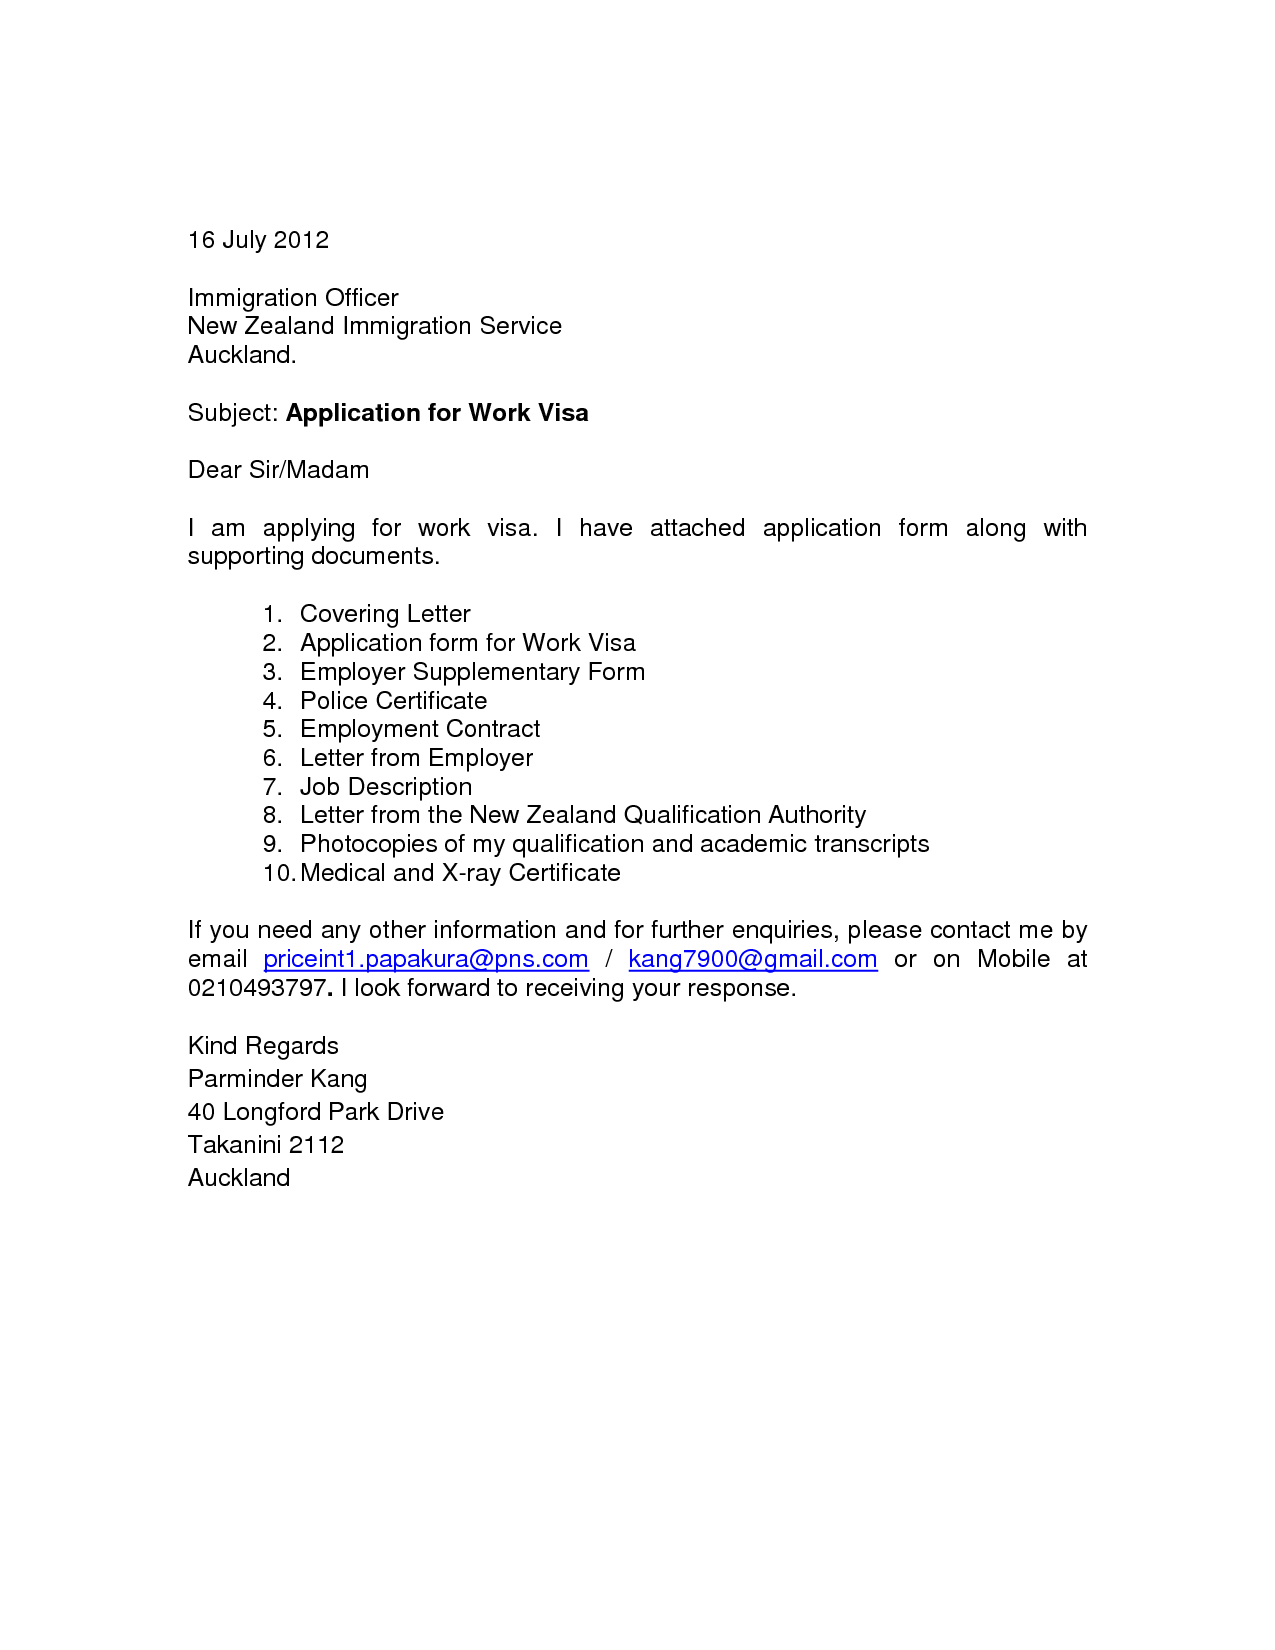 cover letter for visa application essay potna make cover letter for visa application essay potna make youvisa application letter application letter sample